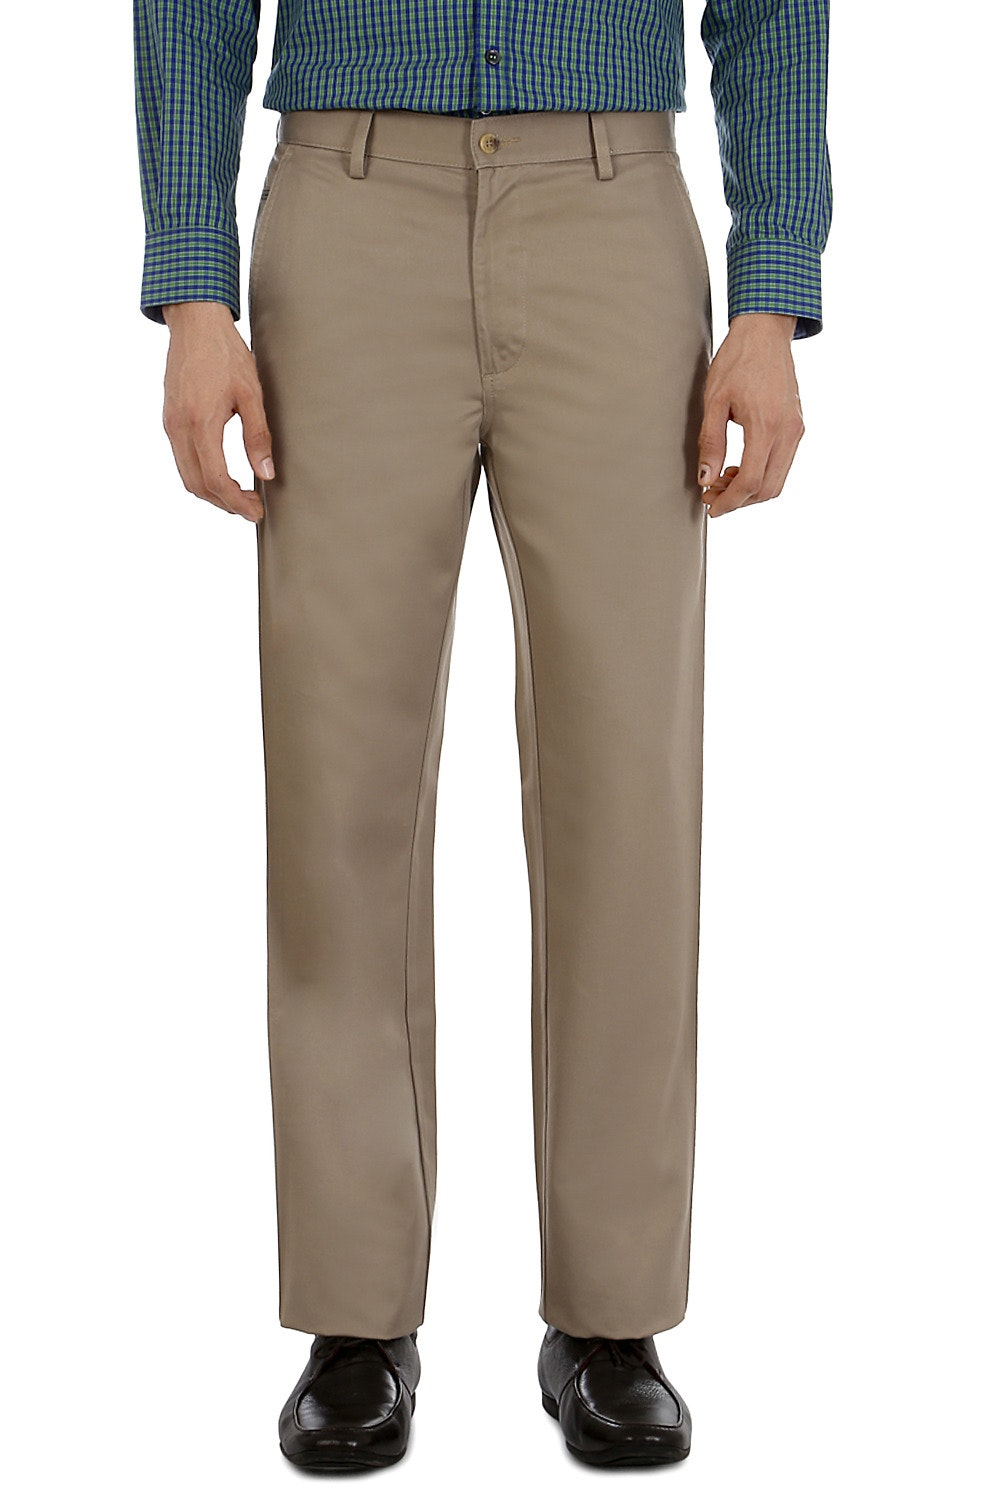 2b6e57e78 Allen Solly Trousers & Chinos, Allen Solly Khaki Trousers for Men at ...